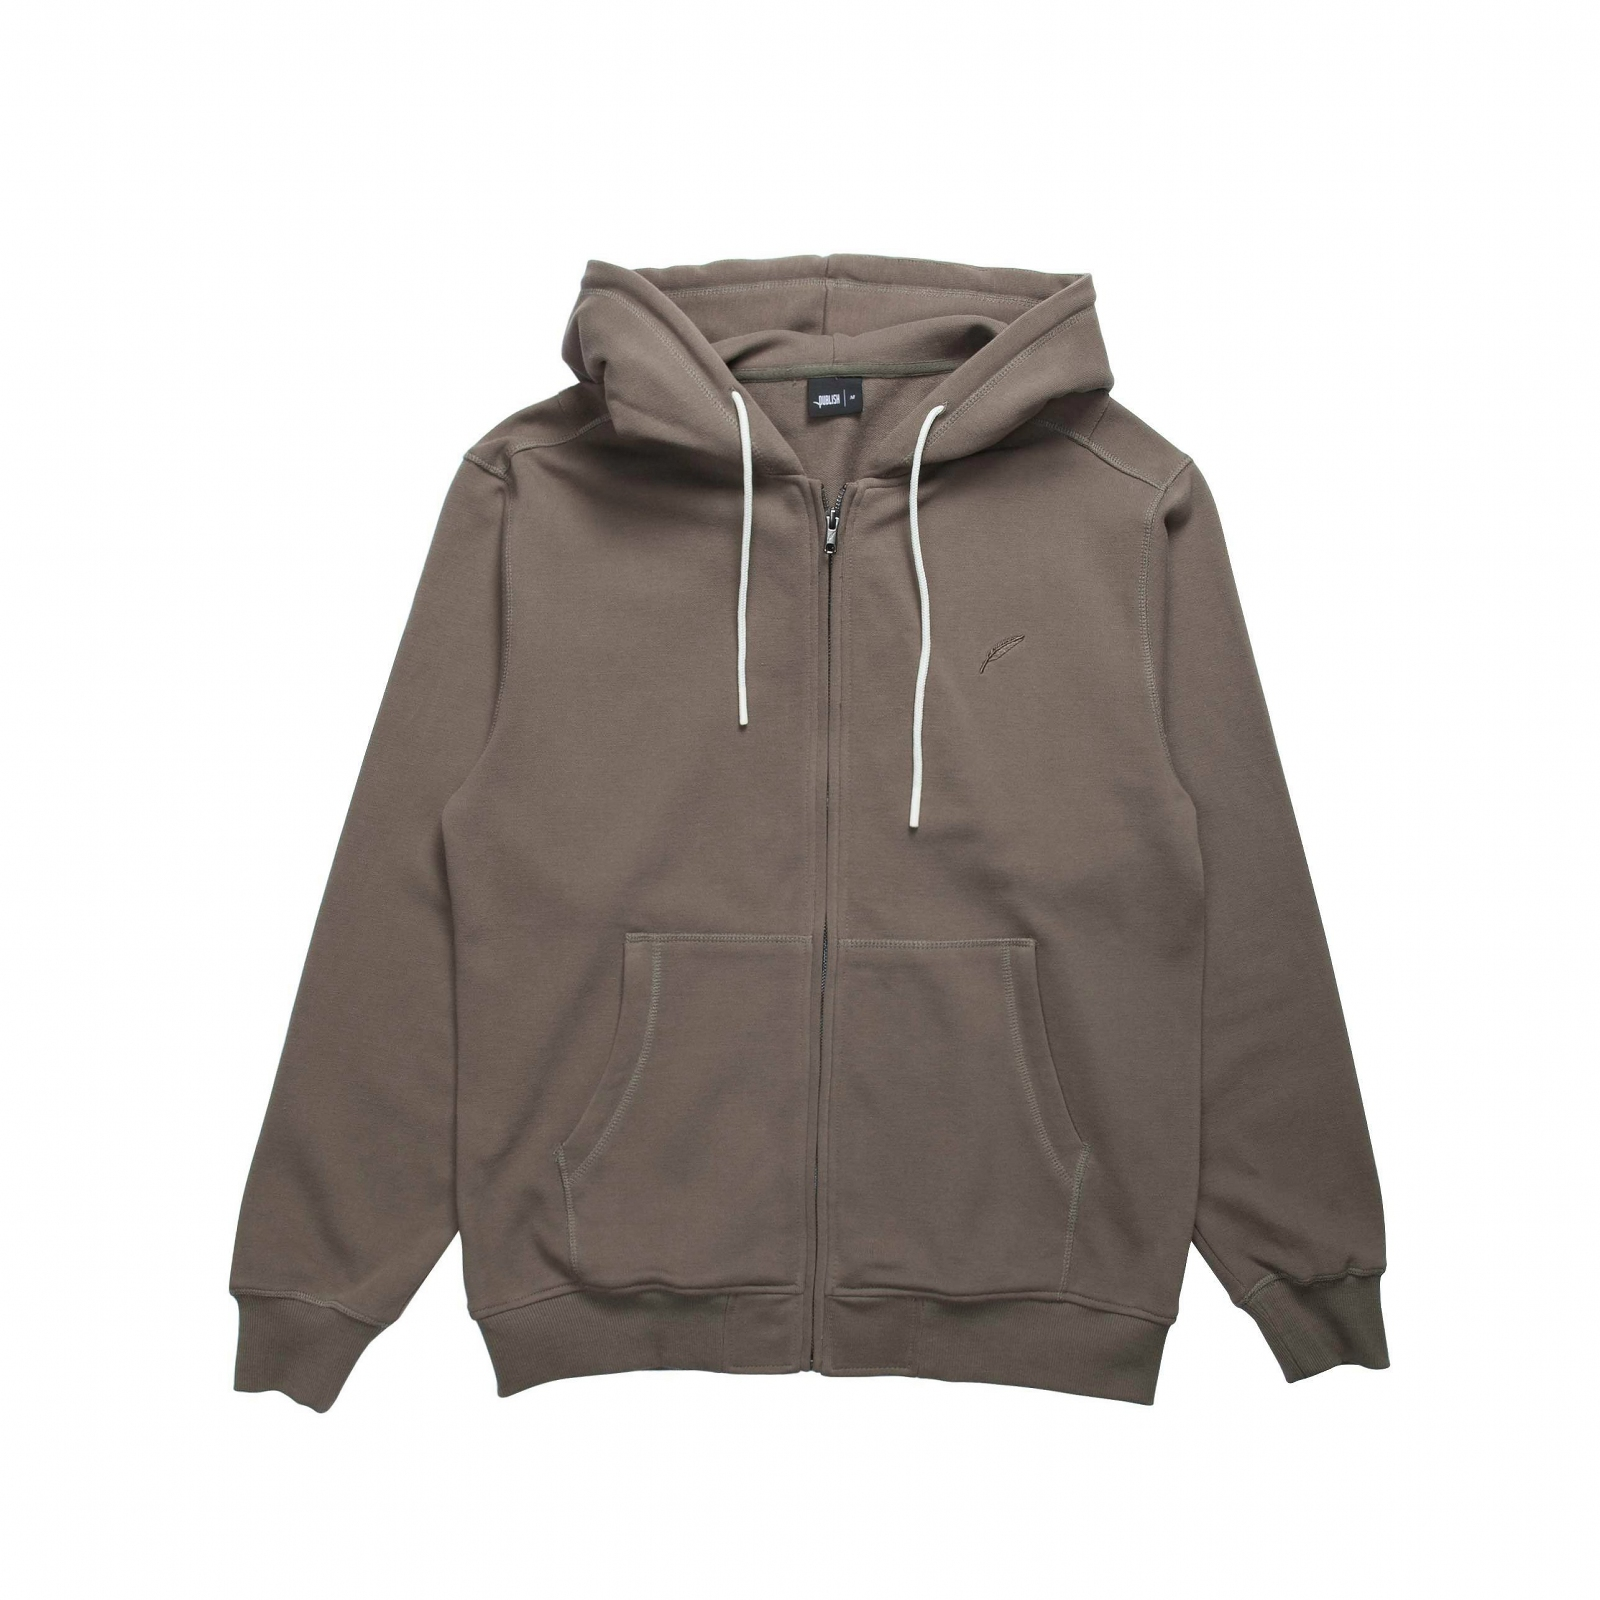 【PUBLISH BRAND/パブリッシュブランド】INDEX ZIP FLEECE HOODIE パーカー / OLIVE